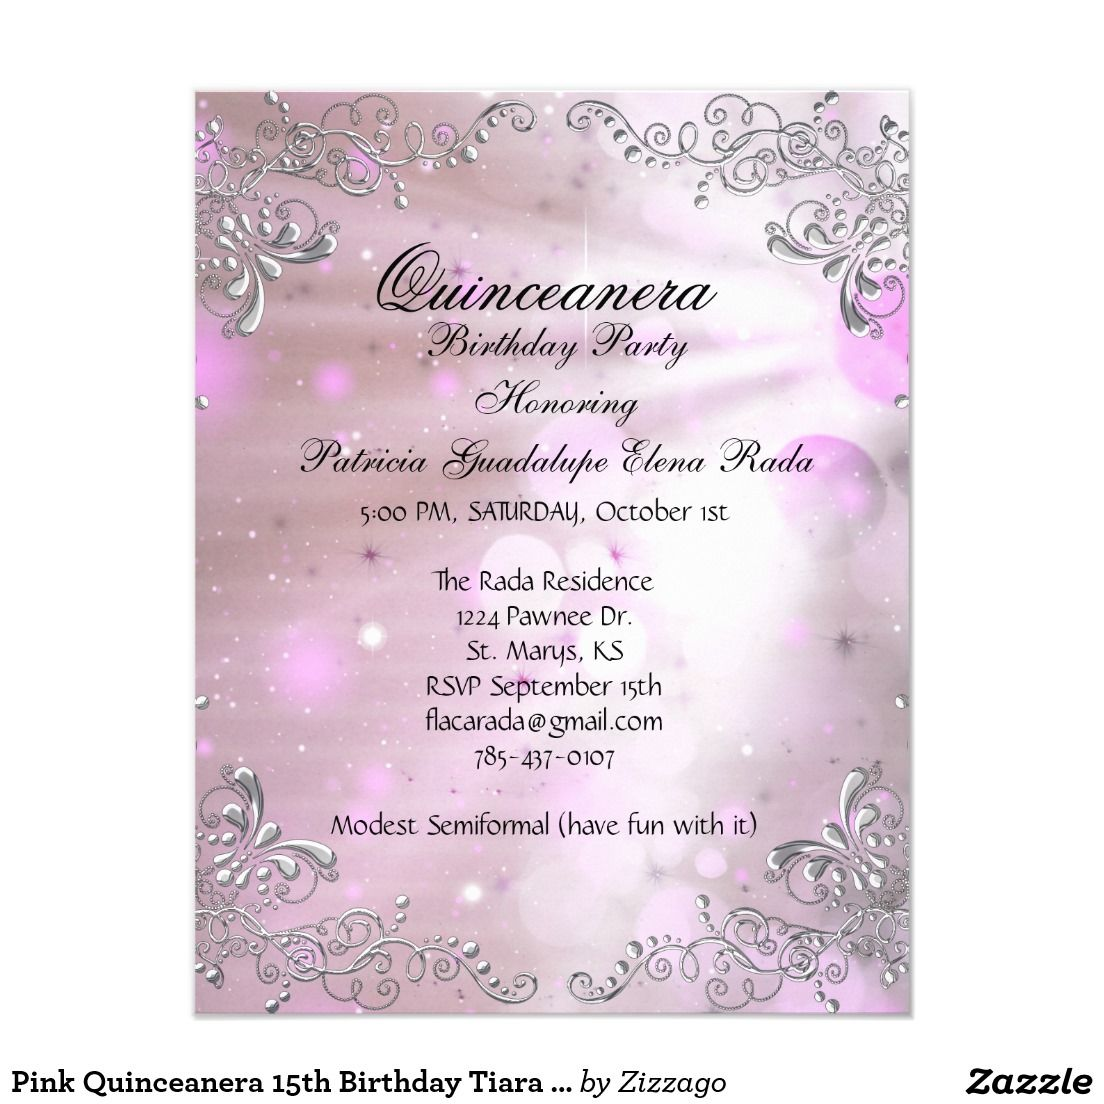 Pink Quinceanera 15th Birthday Tiara Masquerade Card | 15 años ...